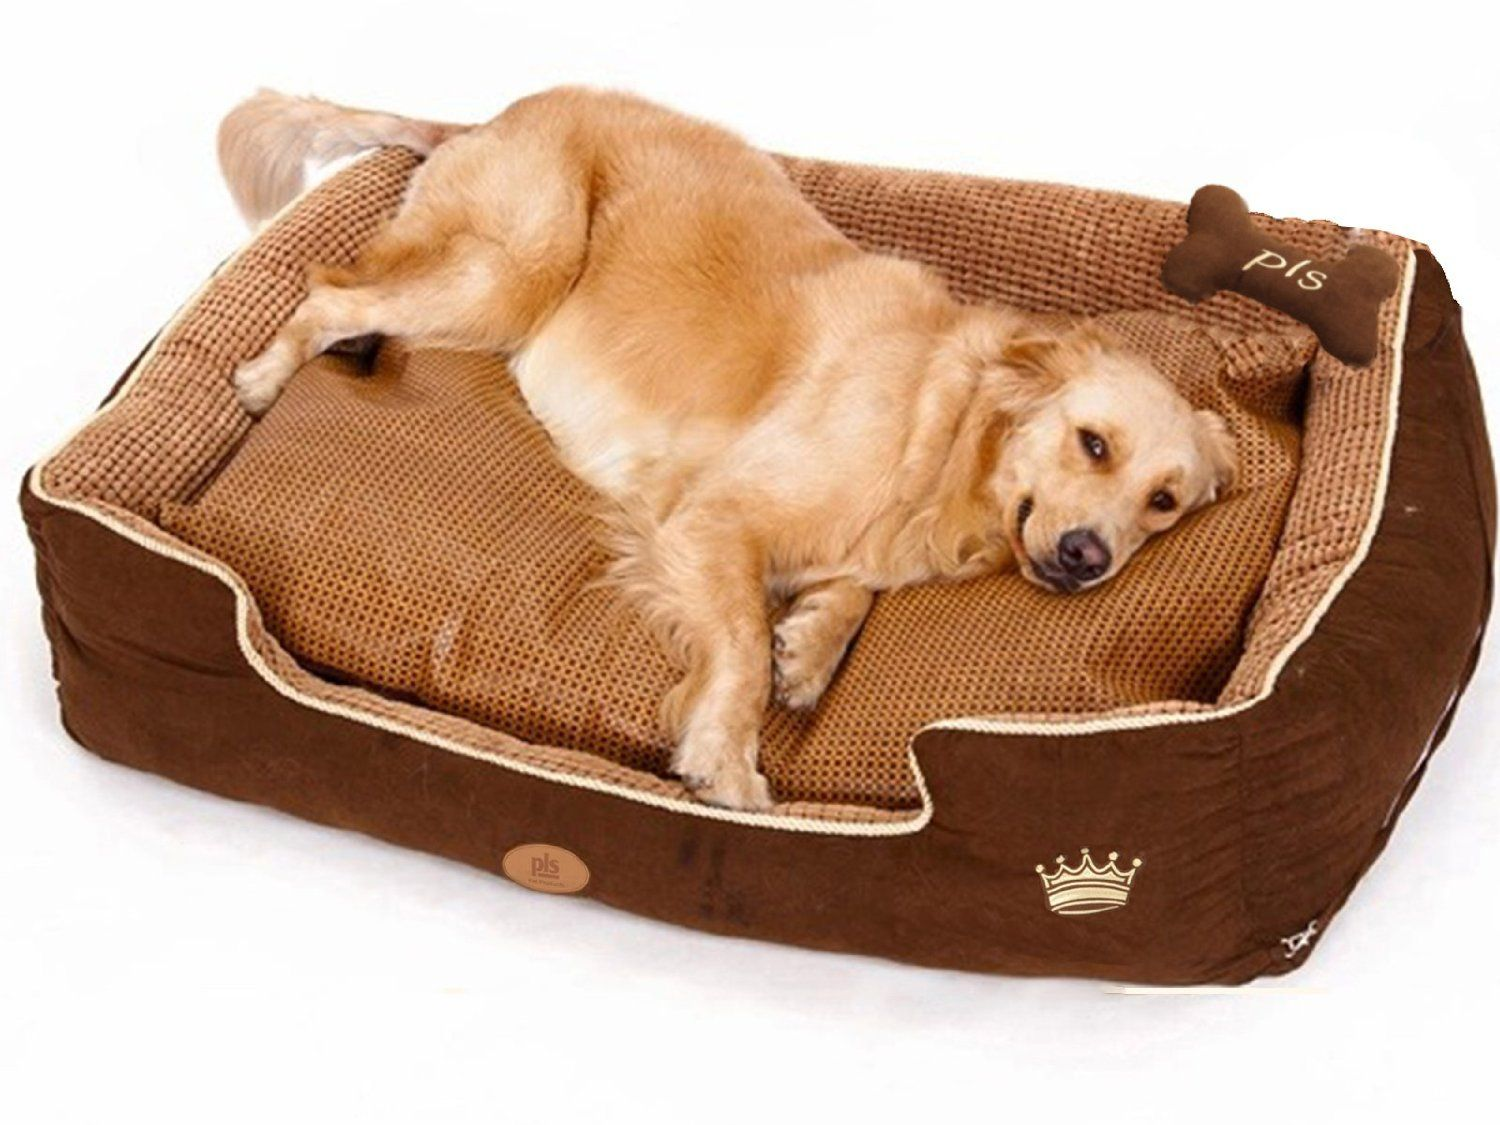 Pin By Pet Dog On 1 Orthopedic Dog Bed Dog Pillow Bed Dog Bed Large